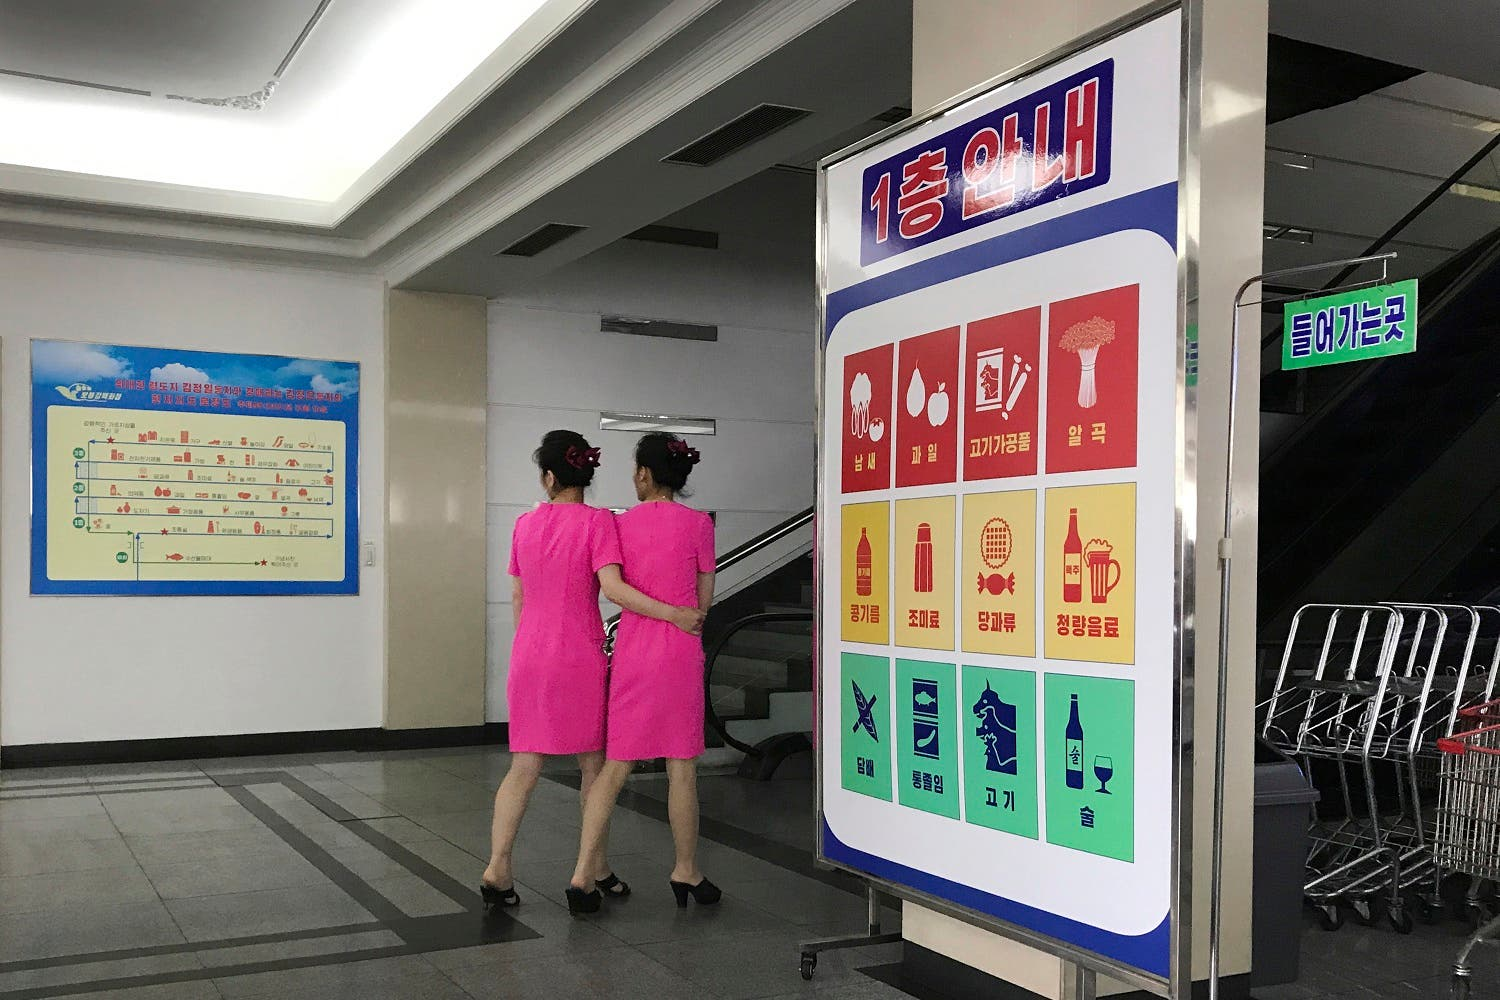 North Korea republic of Kim: The new consumerism